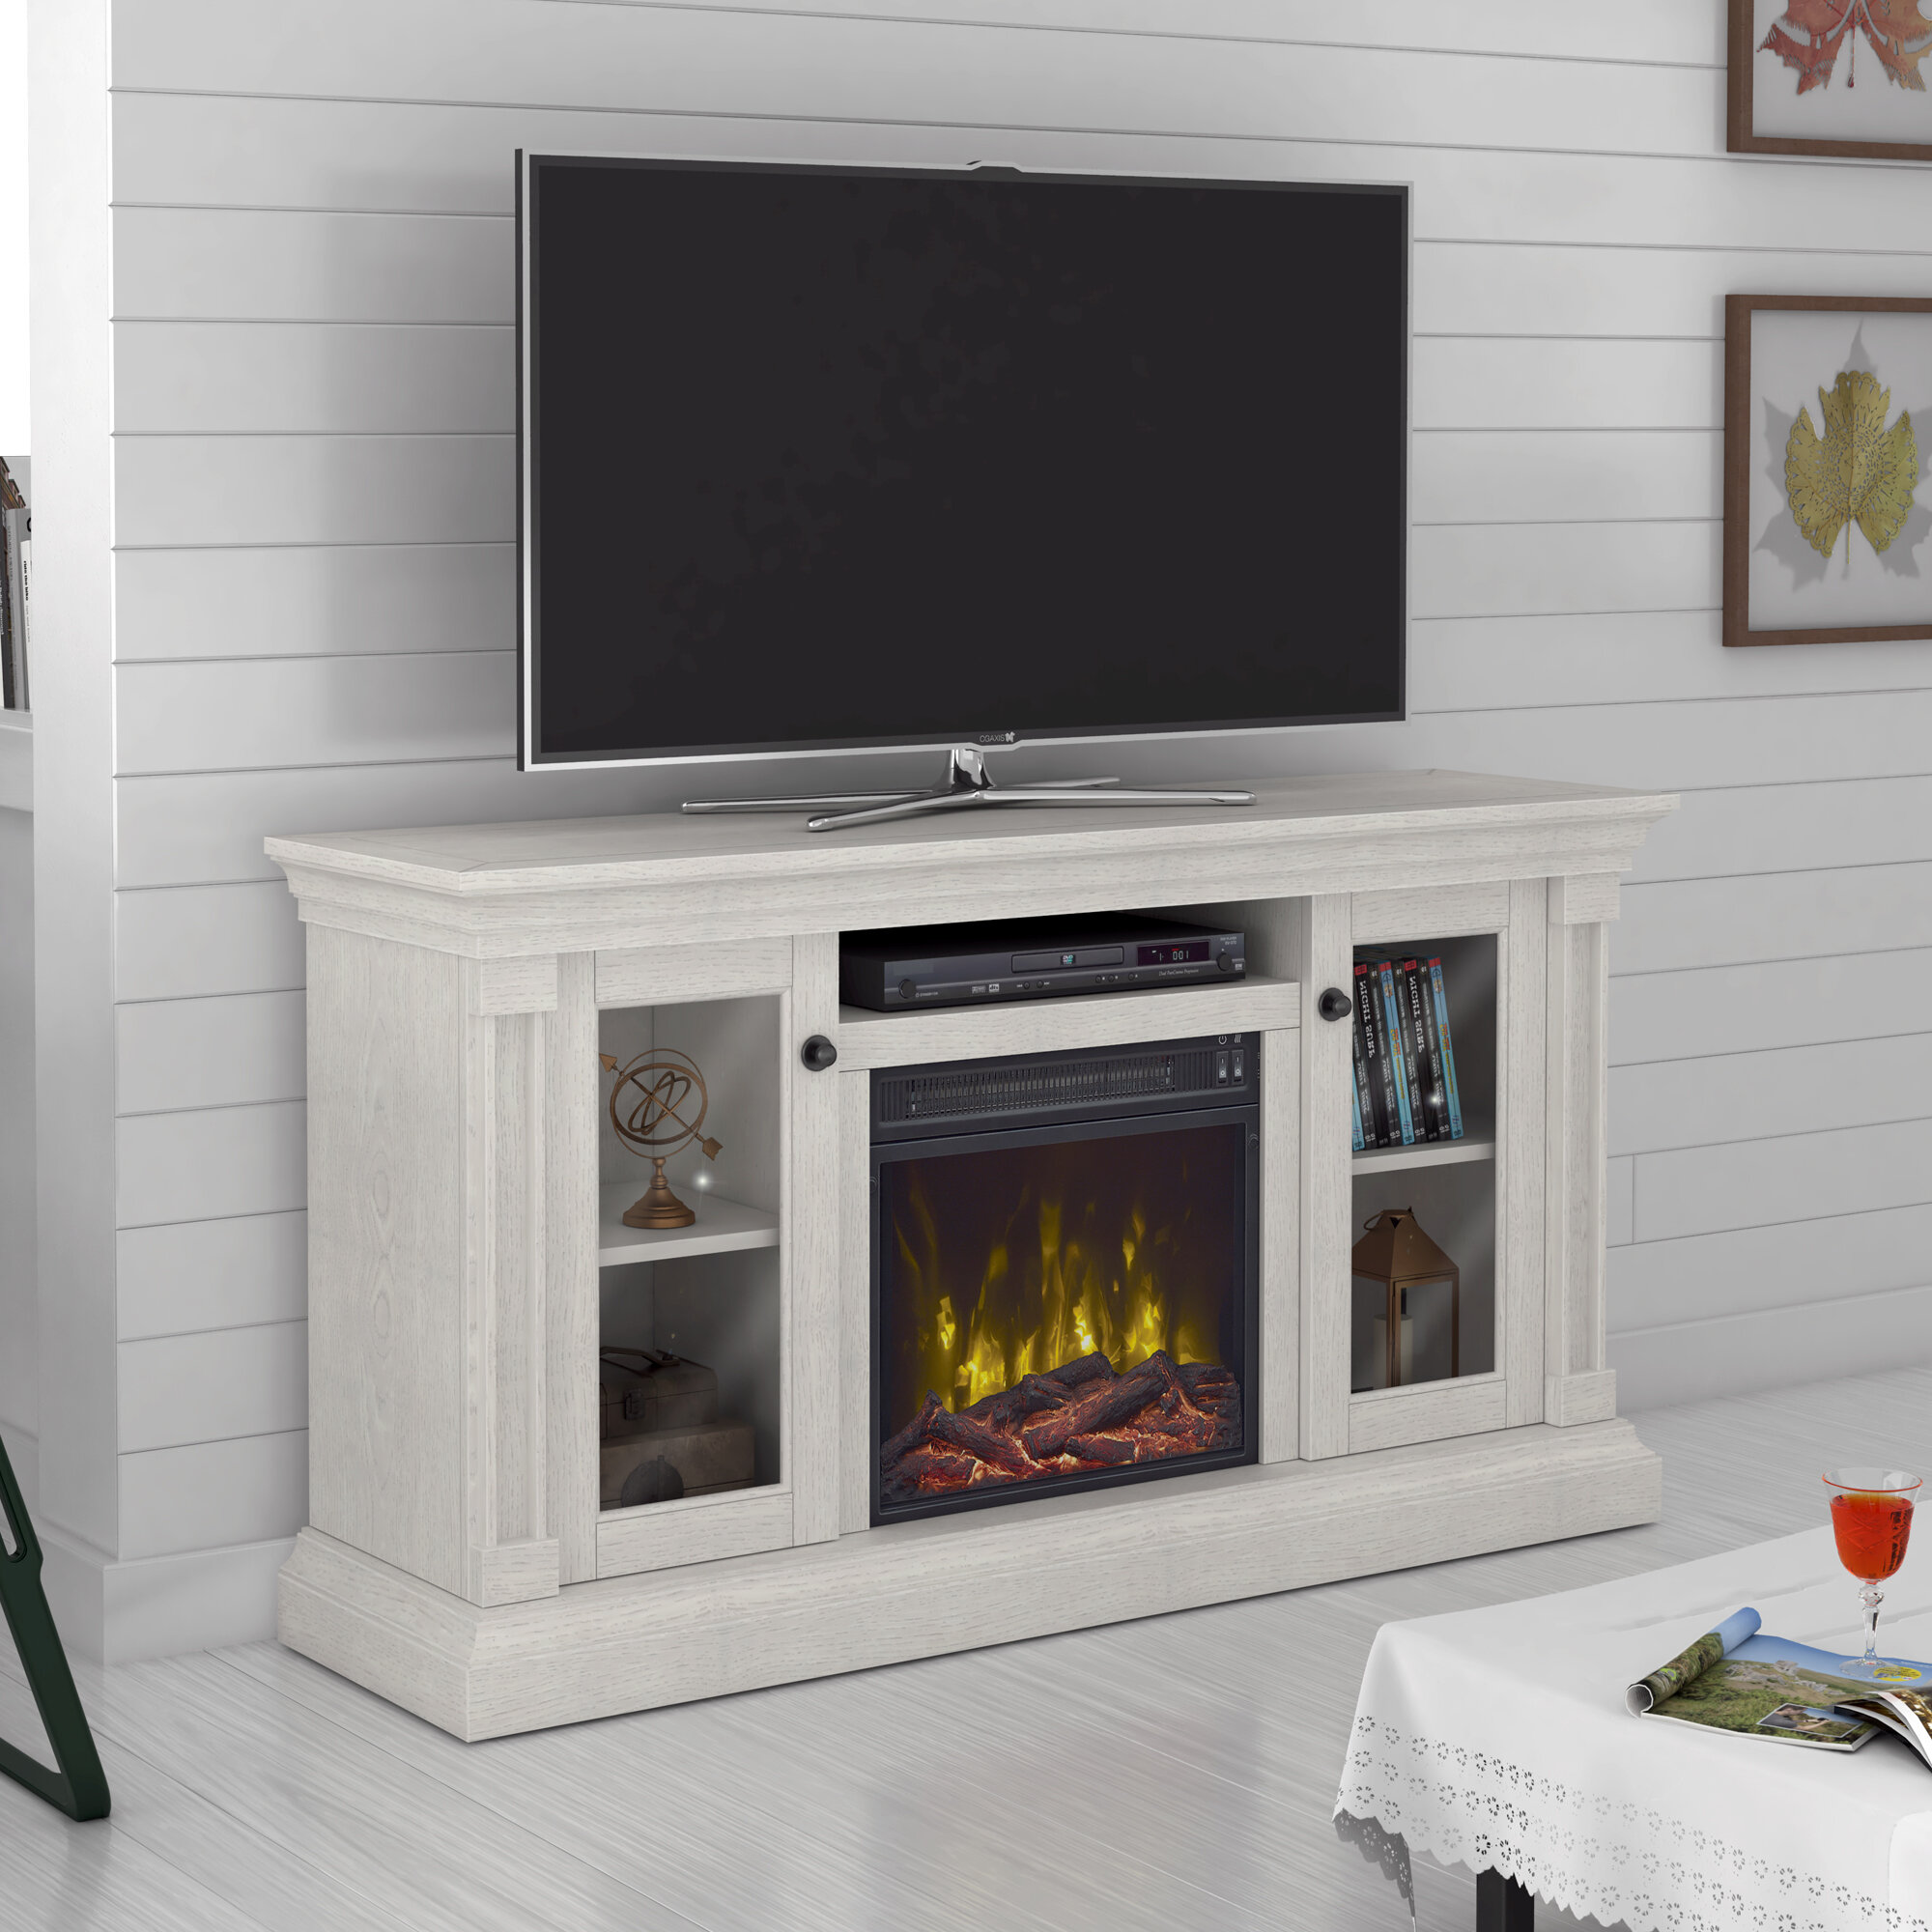 Astounding Annmarie Tv Stand For Tvs Up To 60 With Electric Fireplace Download Free Architecture Designs Ponolprimenicaraguapropertycom